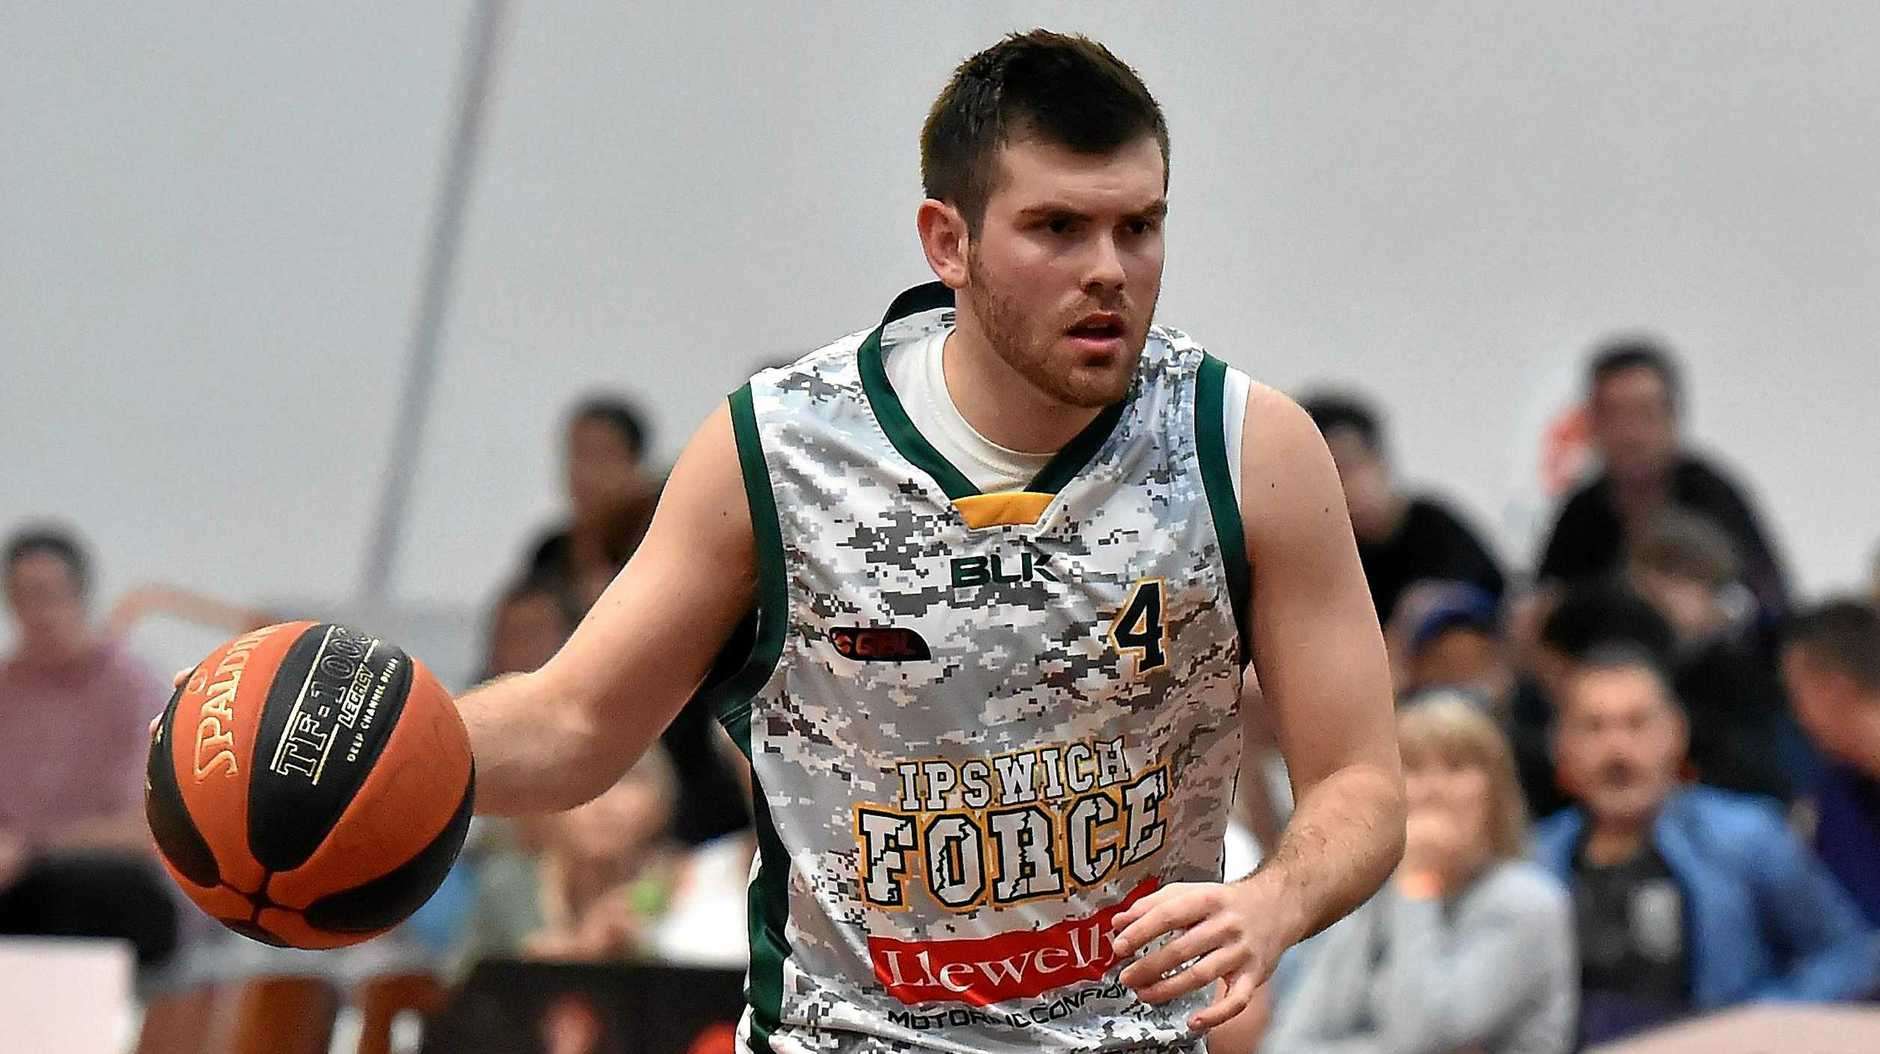 Ipswich Force captain Jason Ralph sets up an offensive play during the recent QBL match against Sunshine Coast Phoenix. His immediate playing future is in limbo after a back injury flared.